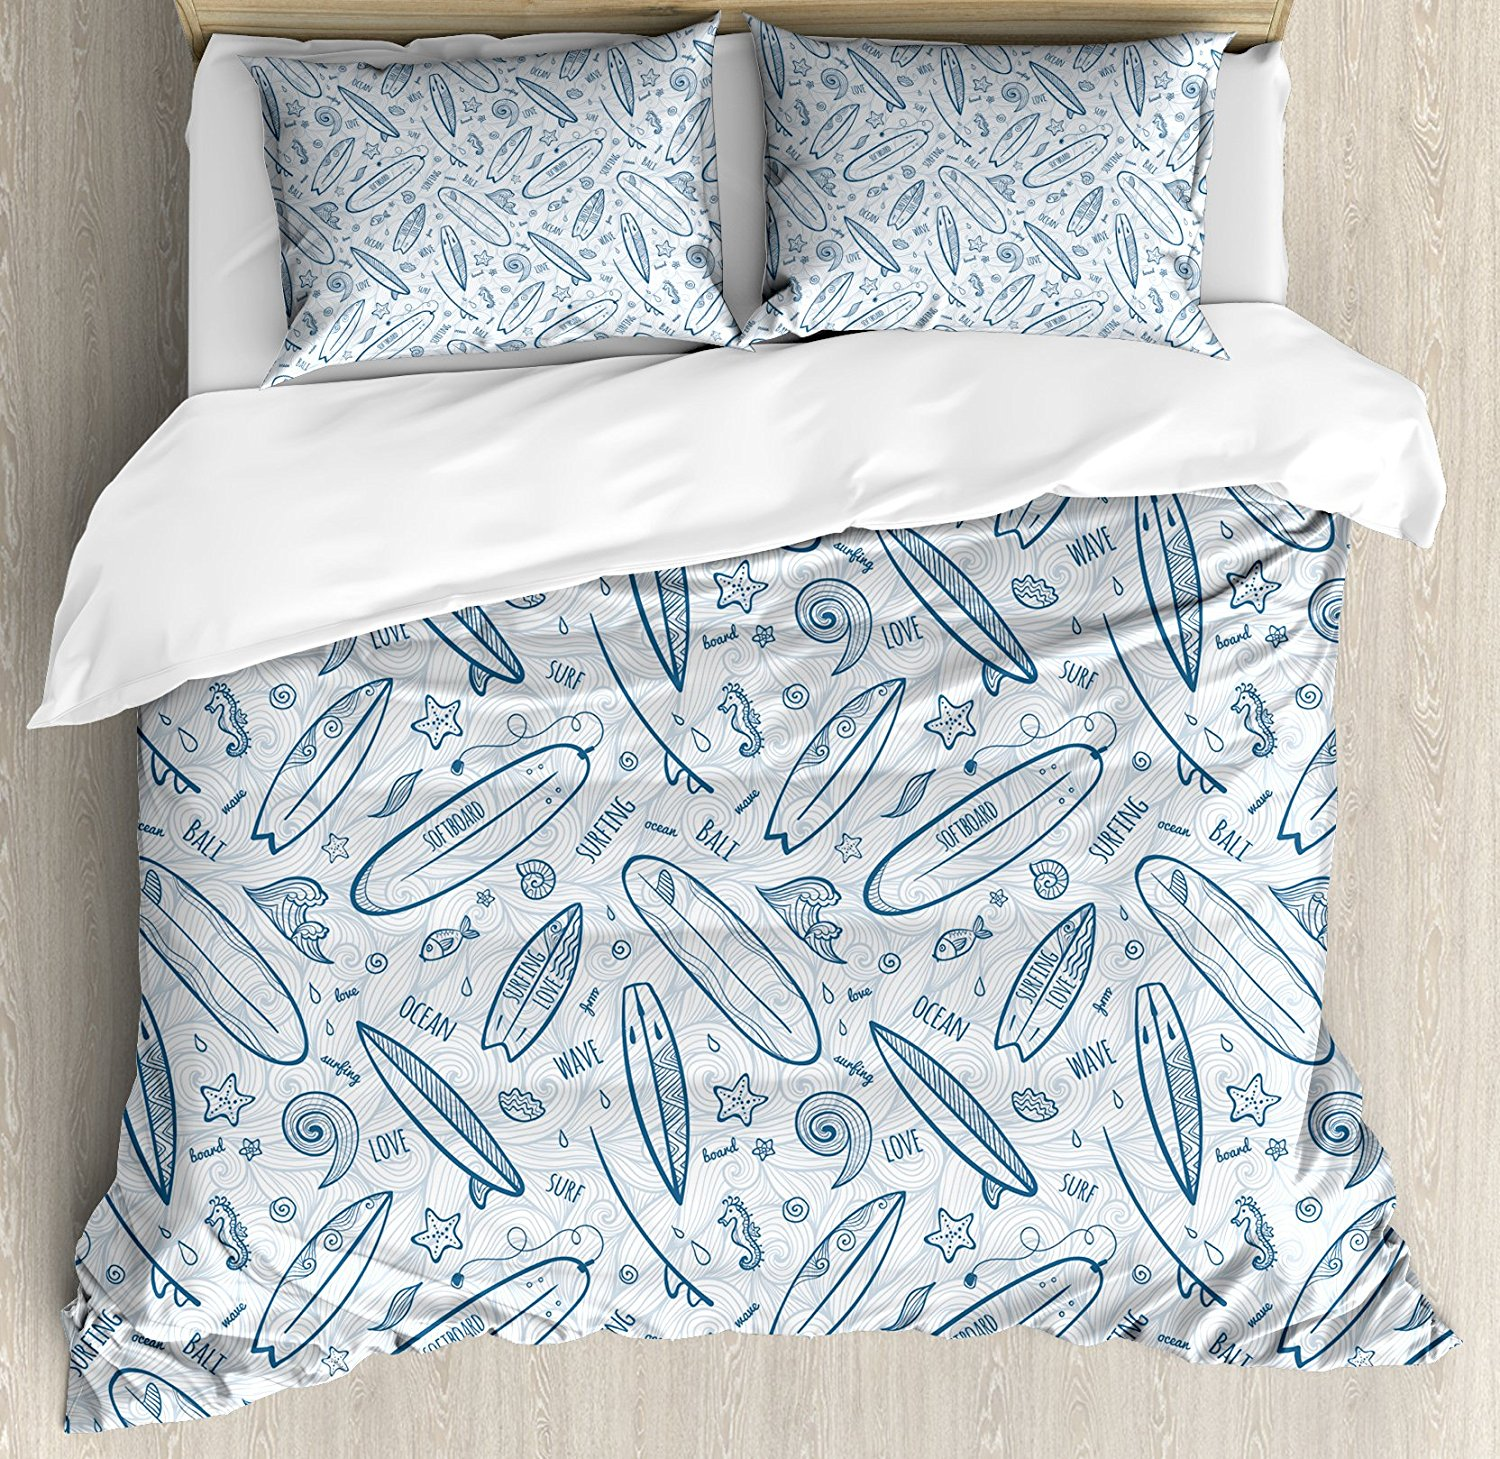 Aliexpress Surfboard Duvet Cover Set Doodle Surfing Boards Waves And Starfishes Hawaiian Summer Decorative 4 Piece Bedding From Reliable